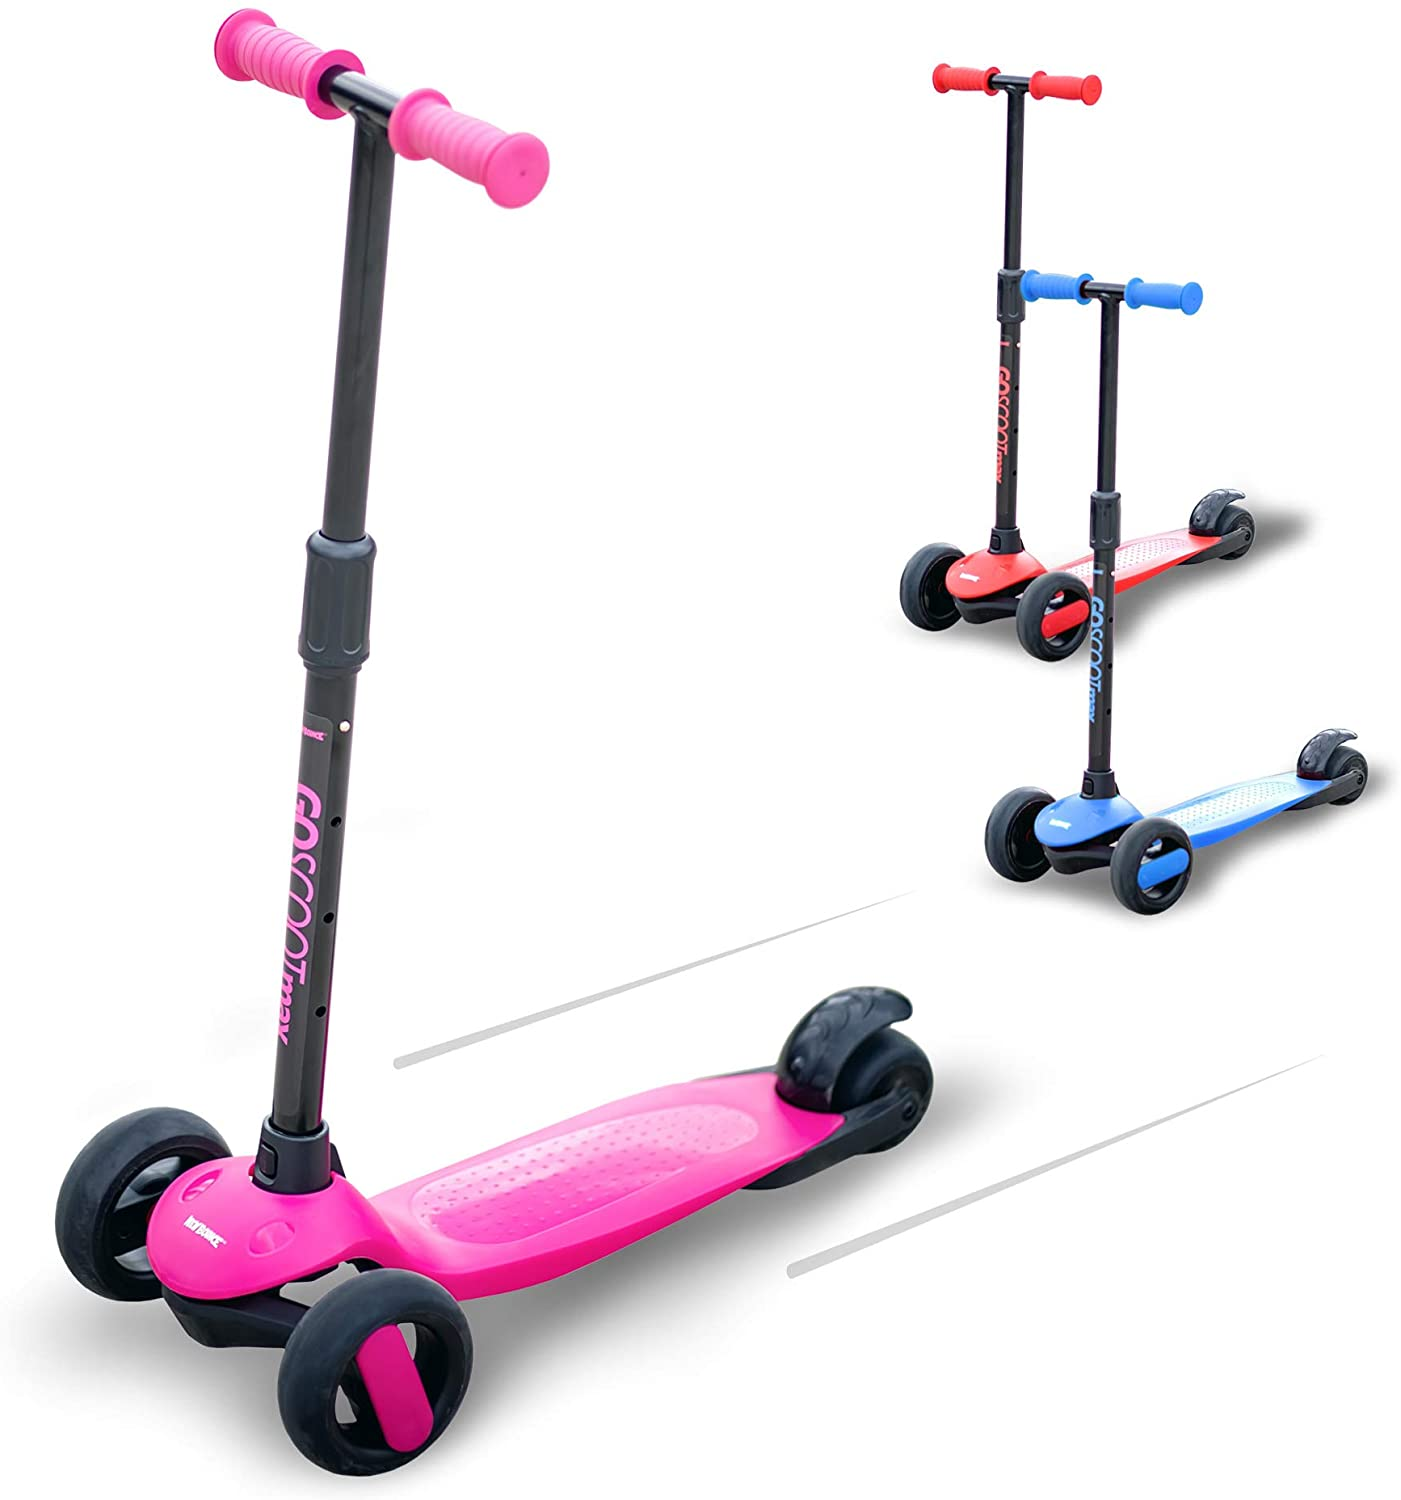 New Bounce 3 Wheel Scooter for Kids - Kick Scooter with Adjustable Handlebar - The GoScoot MAX is Perfect for Children and Toddlers, Girls and Boys Ages 2-6